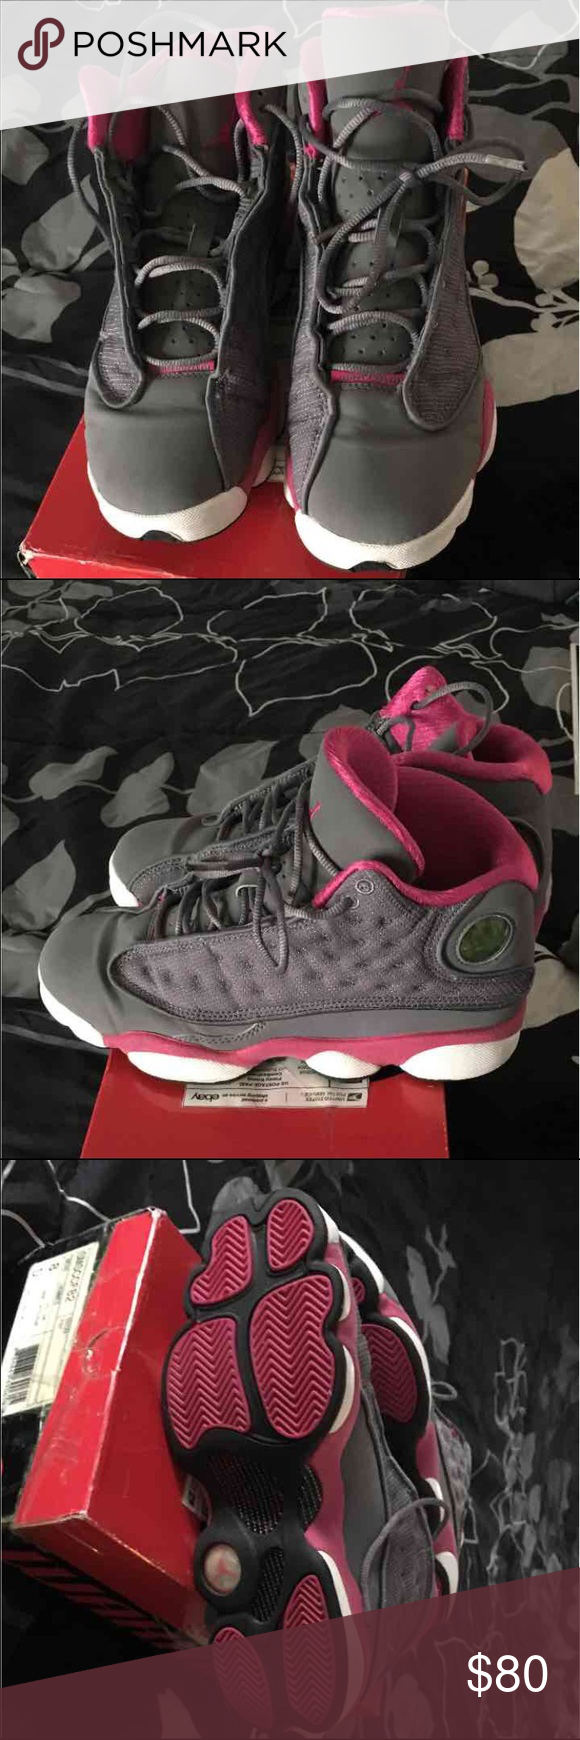 89b9c0b7ab707a Jordan 13 Retro Cool Grey Fusion Pink-White GS Nike Air Jordan XIII 13 Retro  Cool Grey Fusion Pink-White GS in used condition.